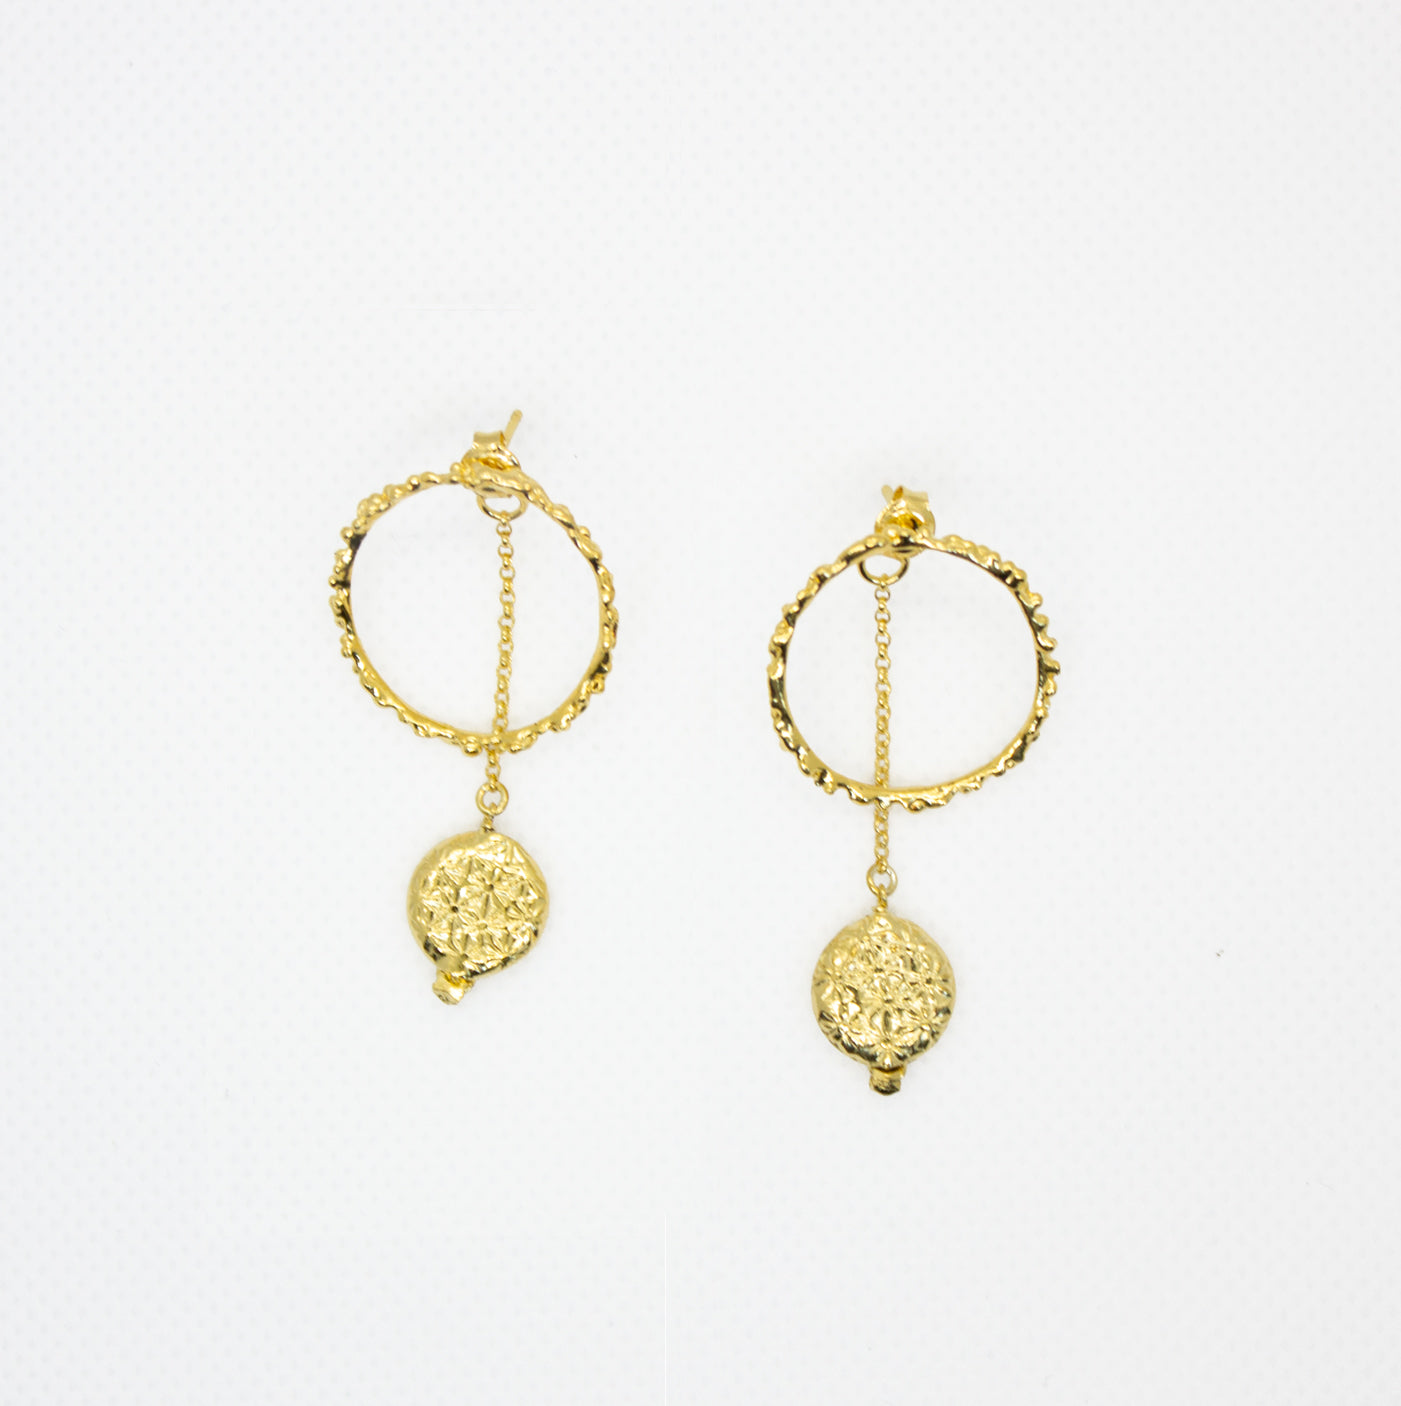 Earrings with Hoops and Dropped Charms